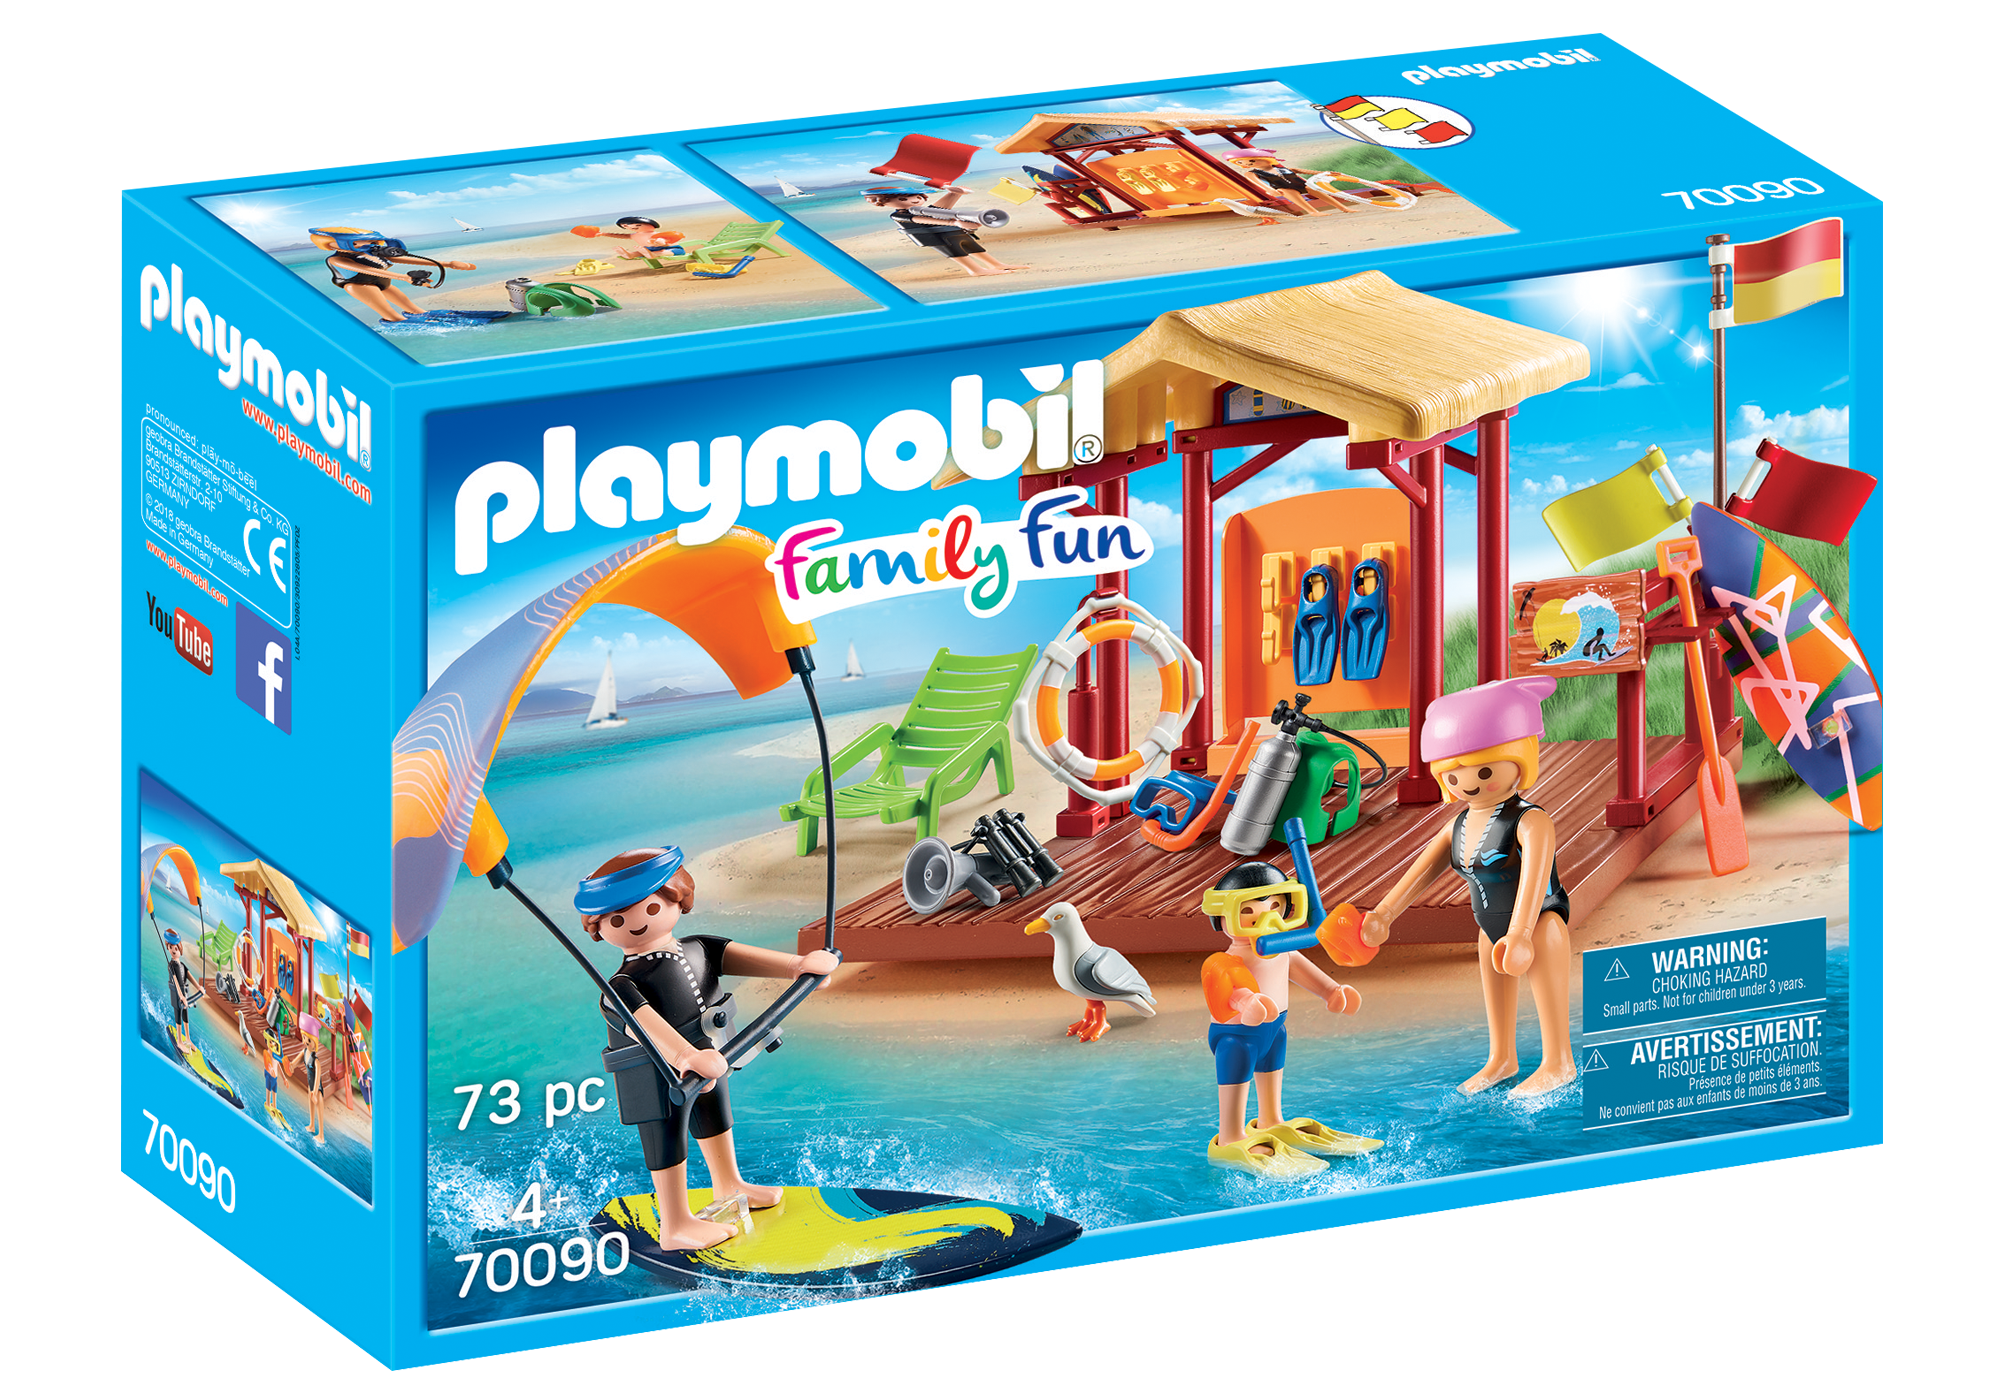 http://media.playmobil.com/i/playmobil/70090_product_box_front